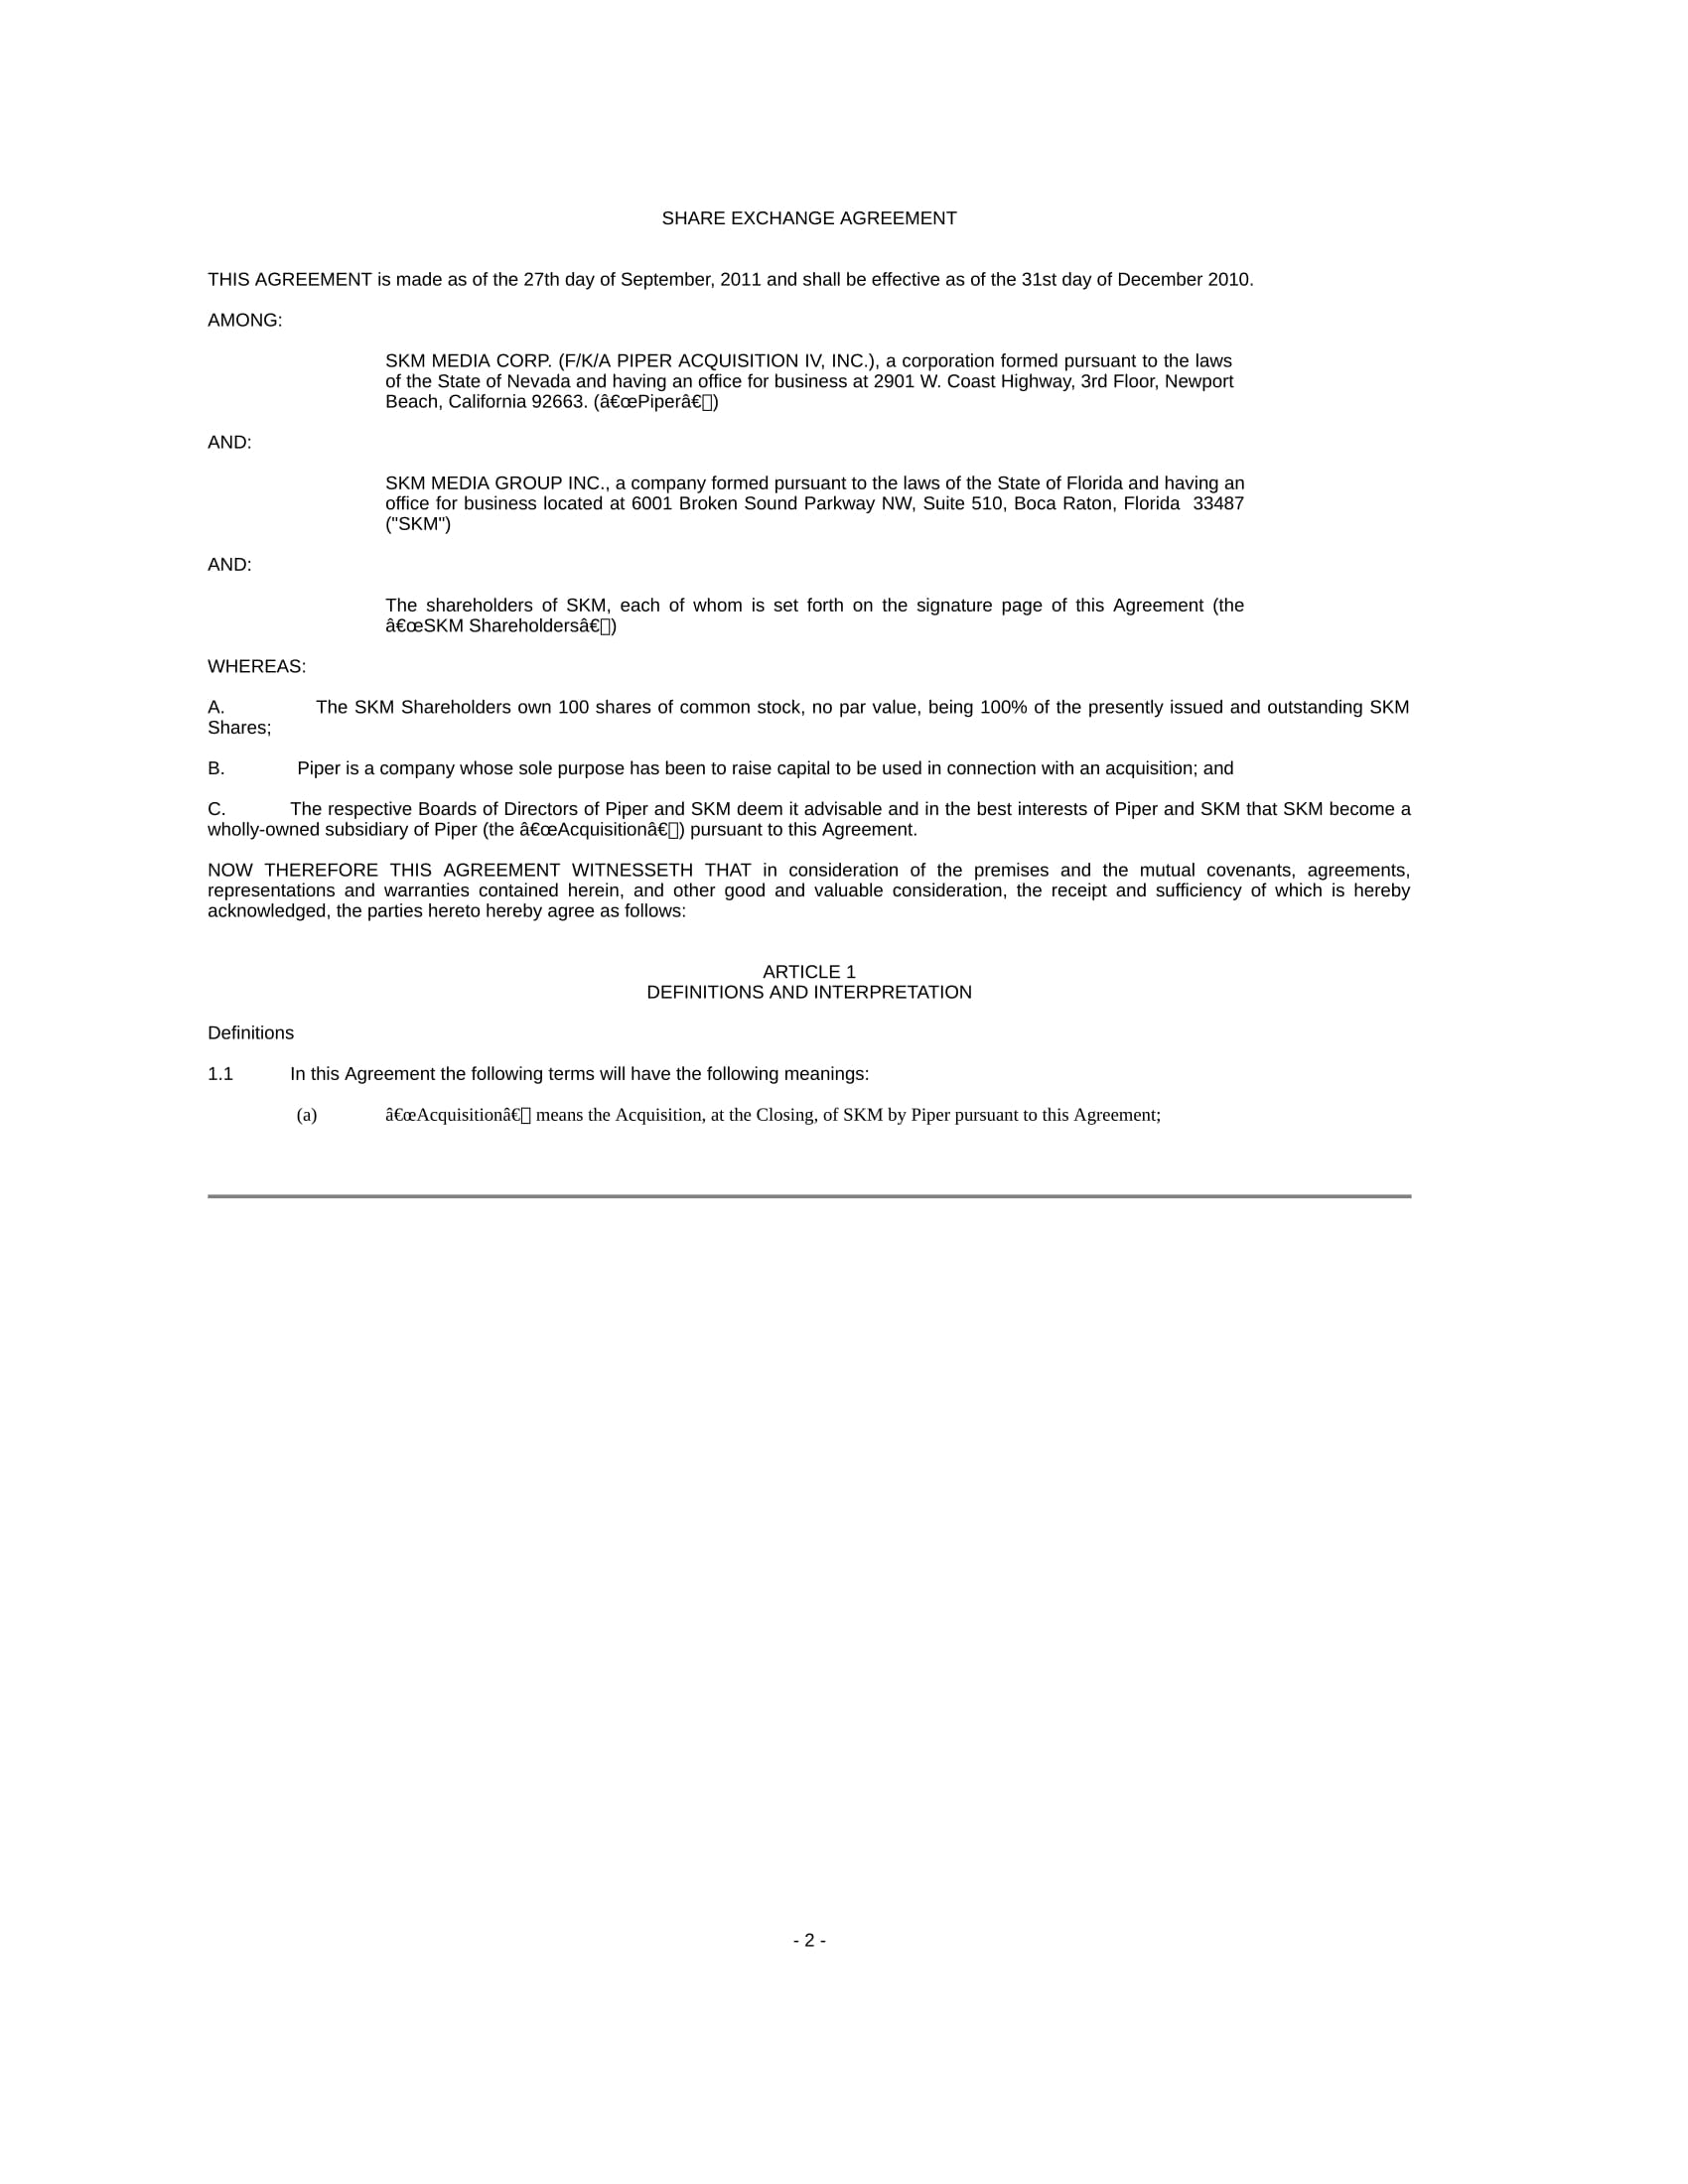 Share Exchange Agreement Template